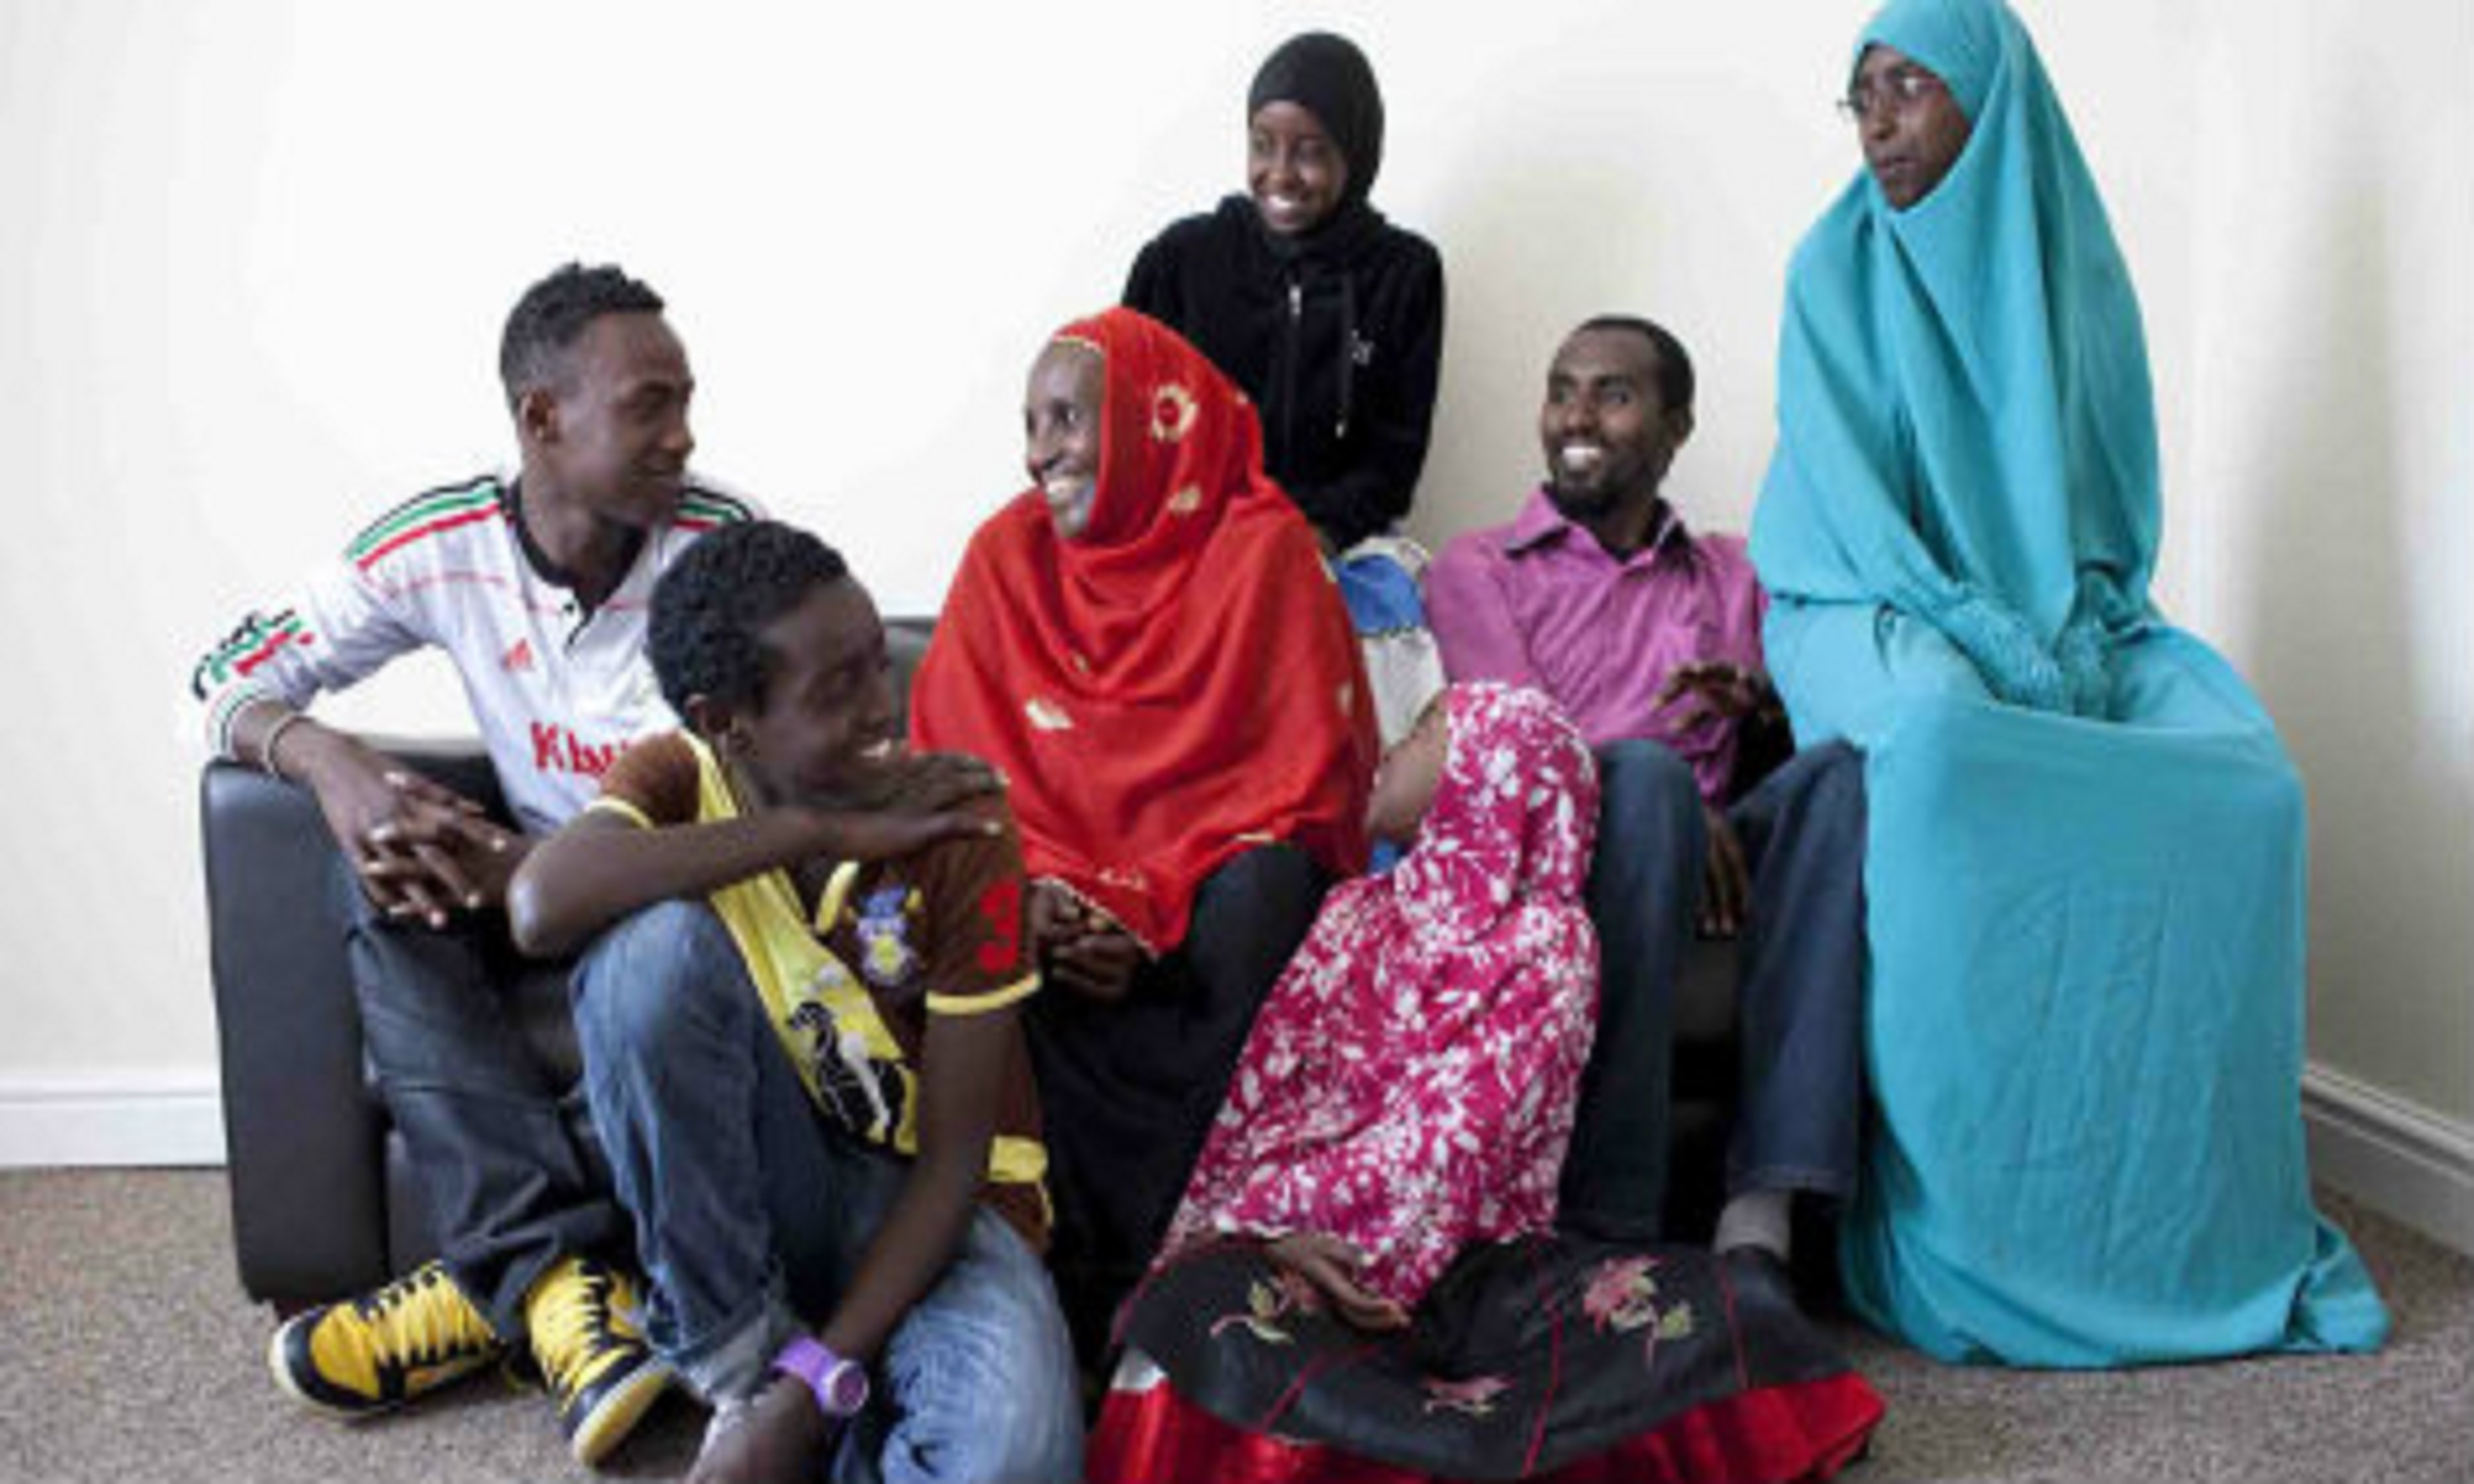 Adem, a refugee from Ethiopia, with his family